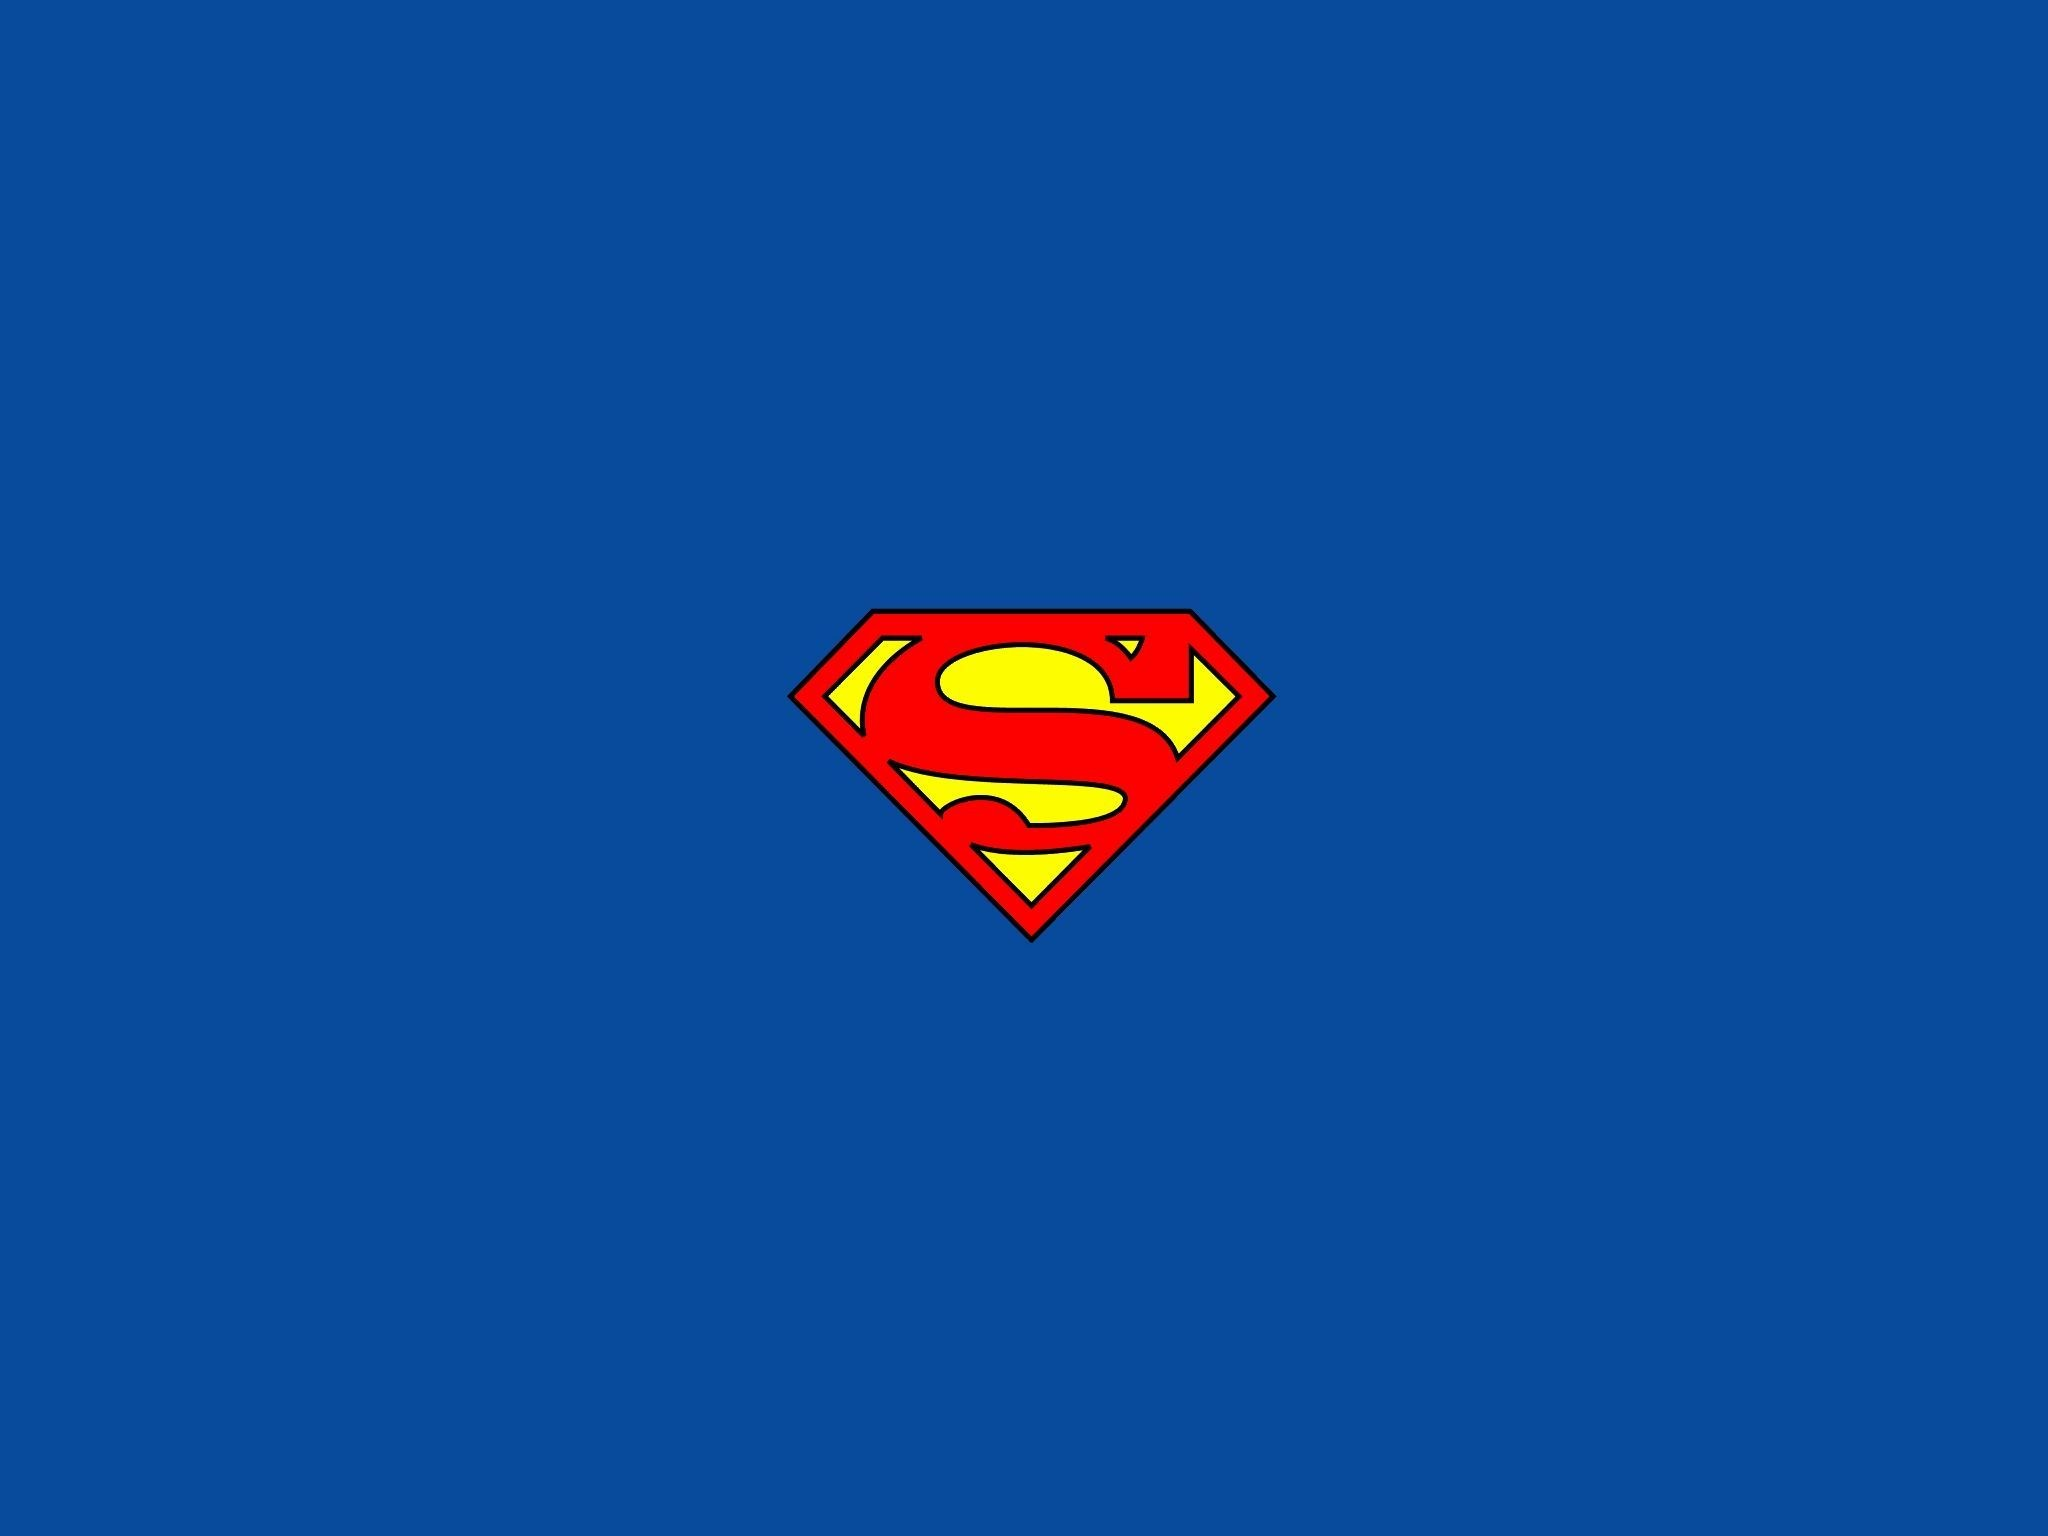 Superman Logo wallpaper ·① Download free amazing High ...